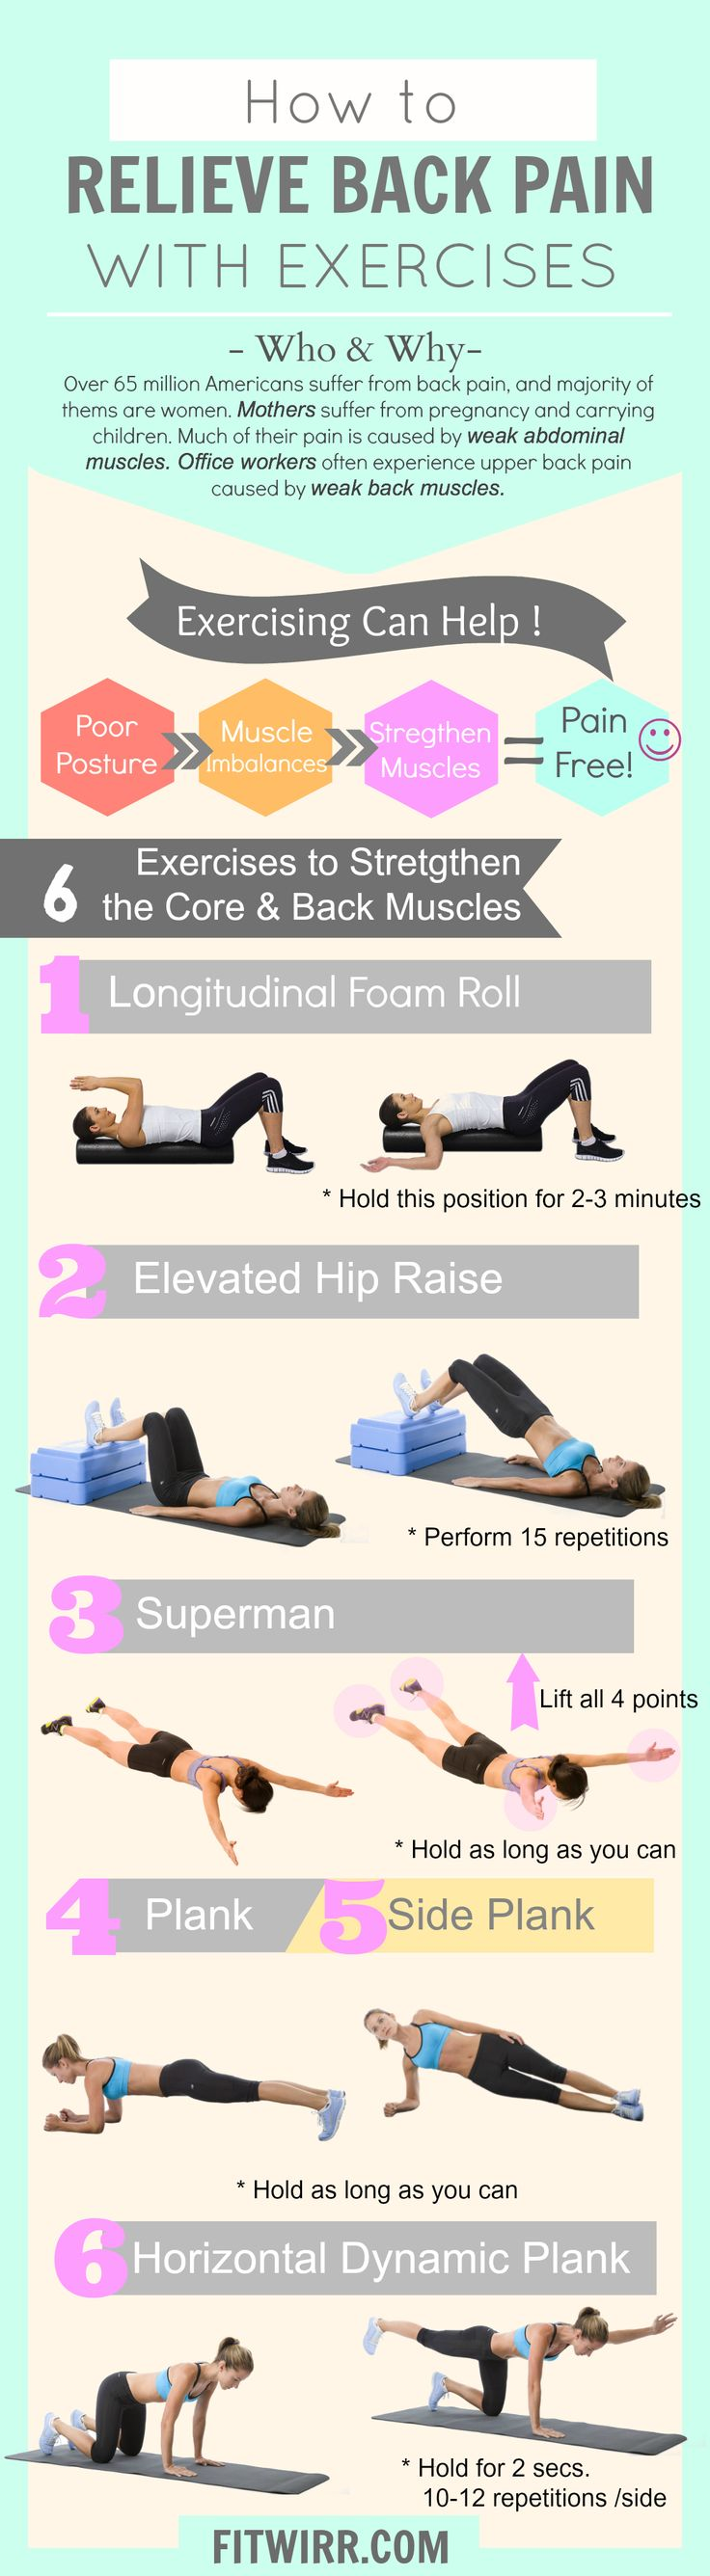 Check out these 6 safe exercises that can help provide back pain relief and strengthen your back and core muscles.